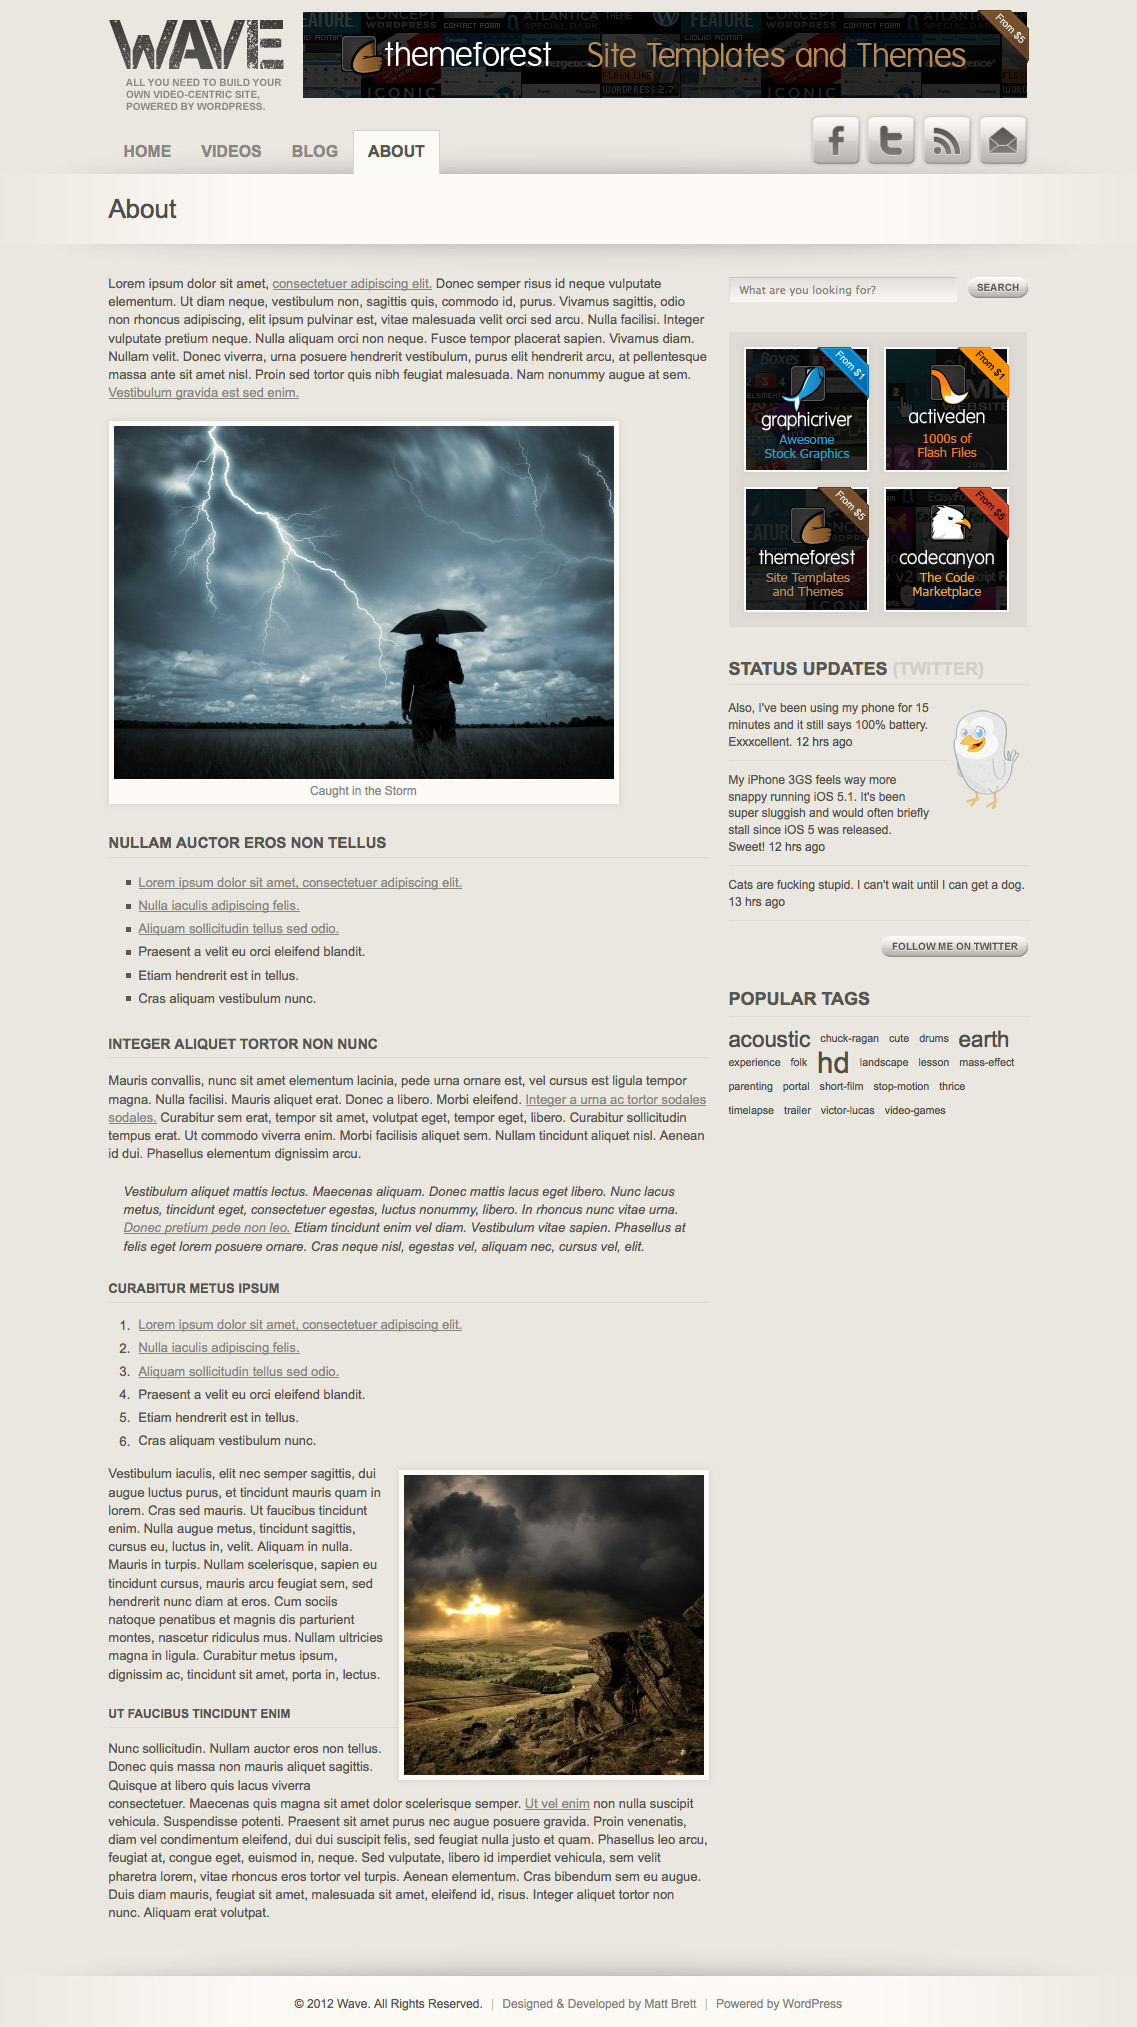 Wave: Video Theme for WordPress - Basic page template, showing typography and embedded image styles.